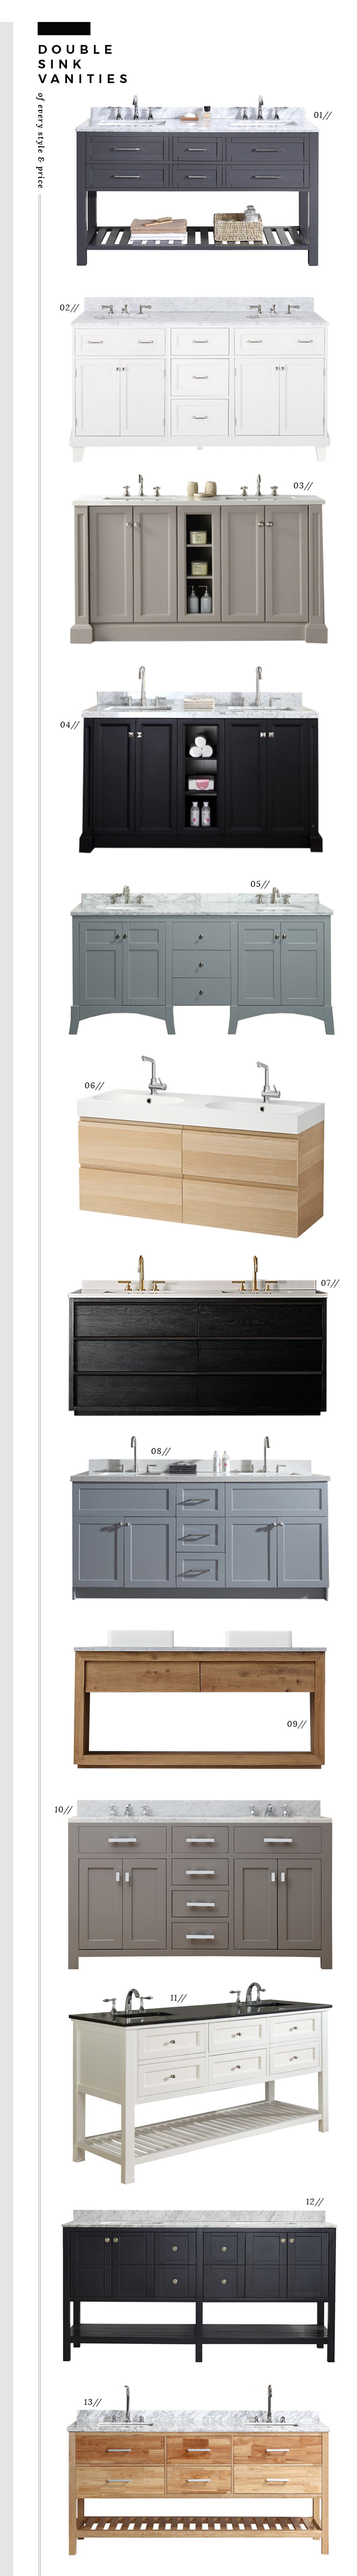 Ready made bathroom vanities room for tuesday blog for Premade bathroom vanities